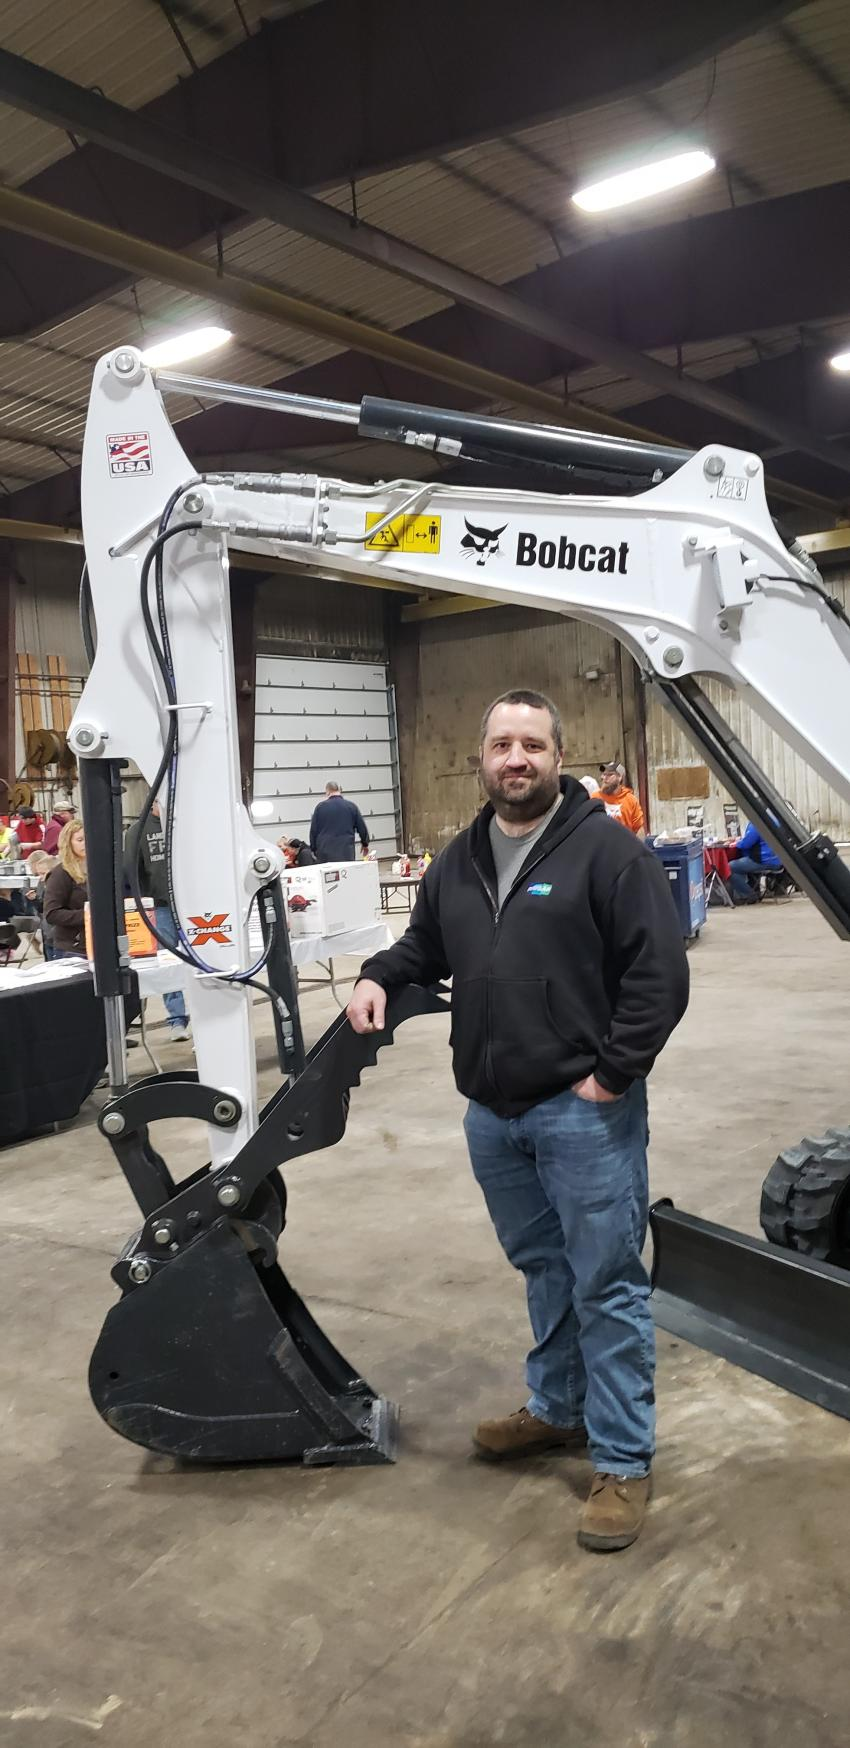 Mike Lougheed, manufacturing engineer at Bobcat's Litchfield, Minn., facility, makes the Bobcat MX Class 4 buckets with thumbs, such as the one shown here on an E35 excavator at the Dassel open house.